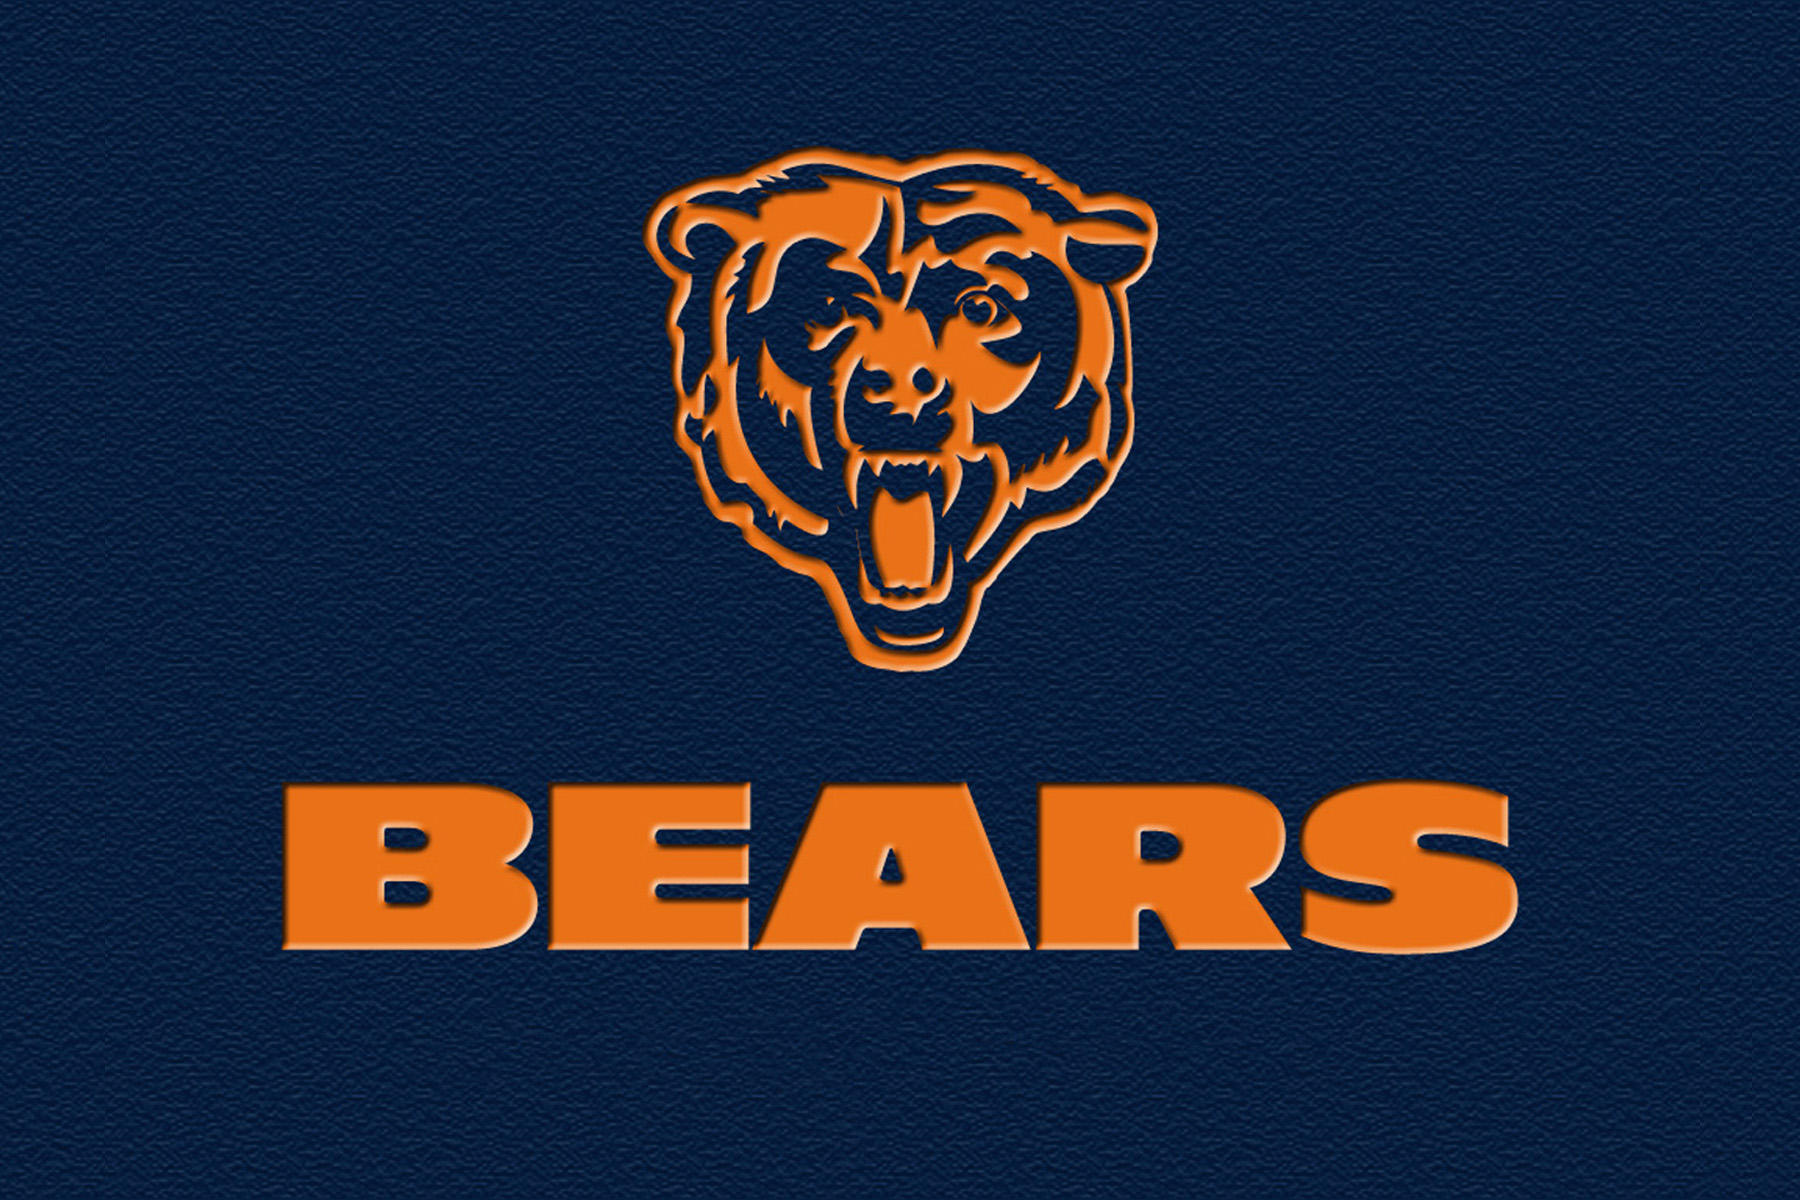 Chicago Bears Backgrounds, Compatible - PC, Mobile, Gadgets| 1800x1200 px